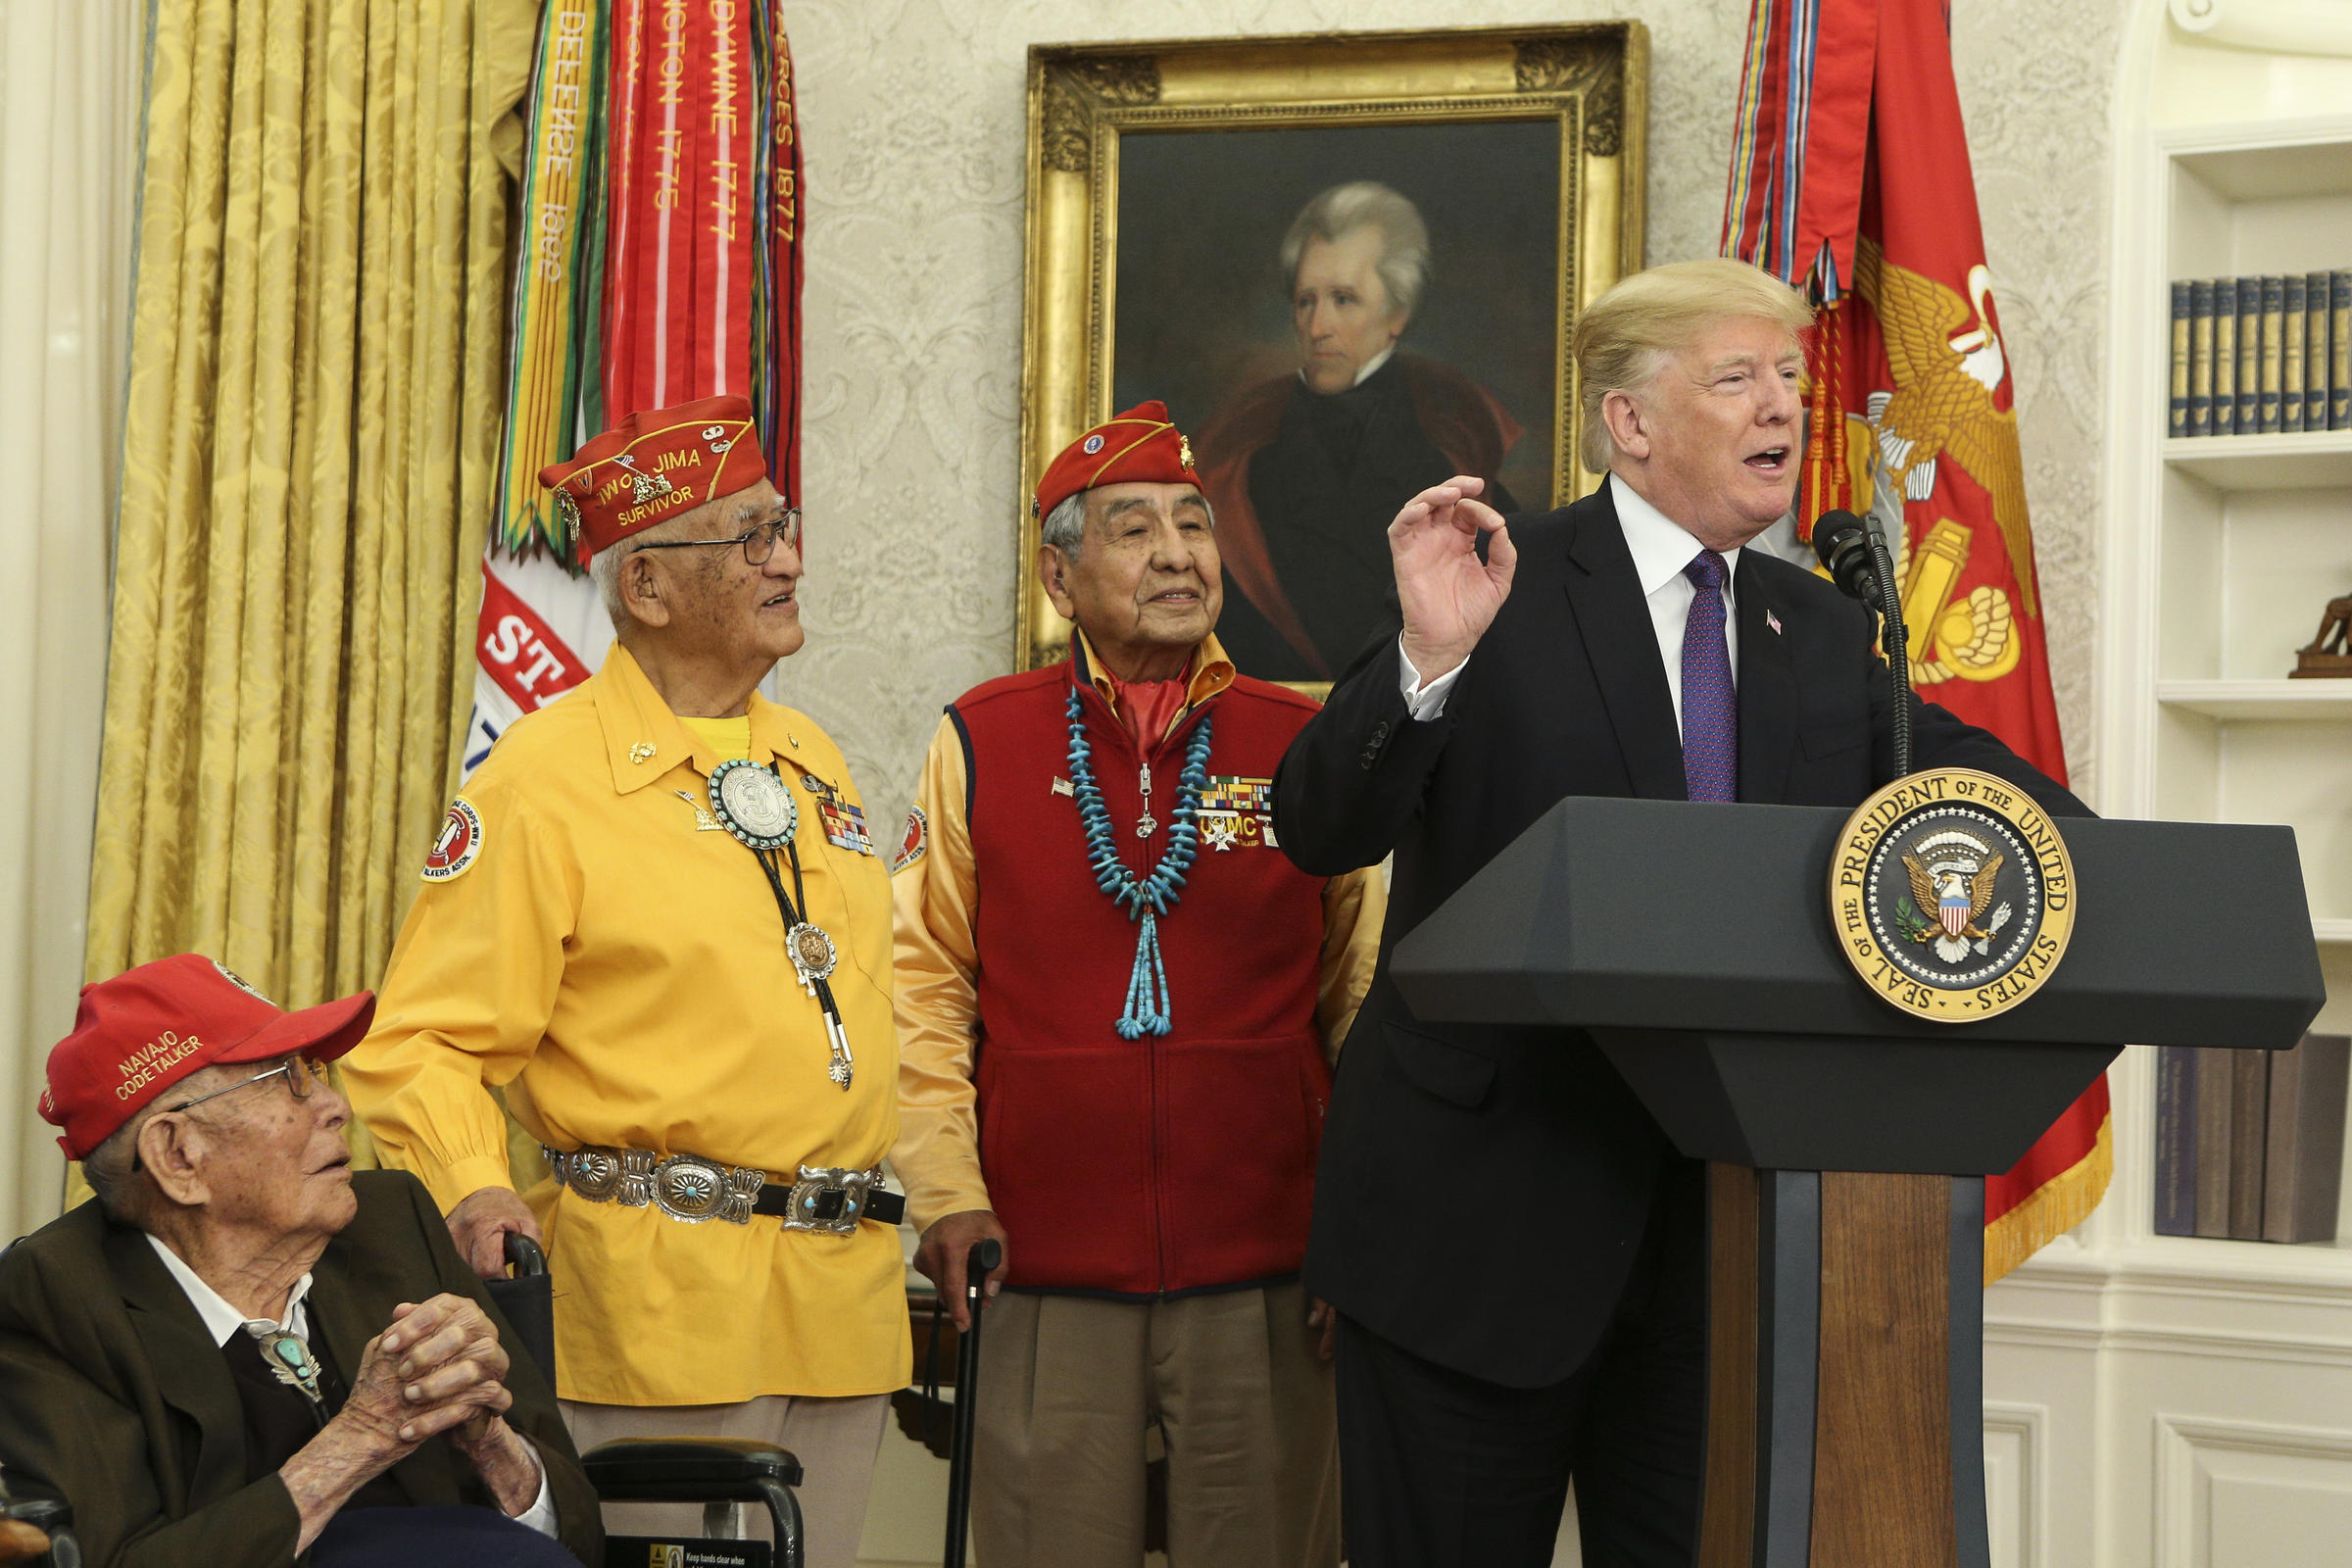 The Benefits Of Learning English Essay President Donald Trump R Speaks During An Event Honoring Members Of The  Native American Code Talkers In The Oval Office Of The White House On  November   Topics For High School Essays also Thesis Generator For Essay Essay American Indians Support Of The United States  Wuwm Essay Thesis Statement